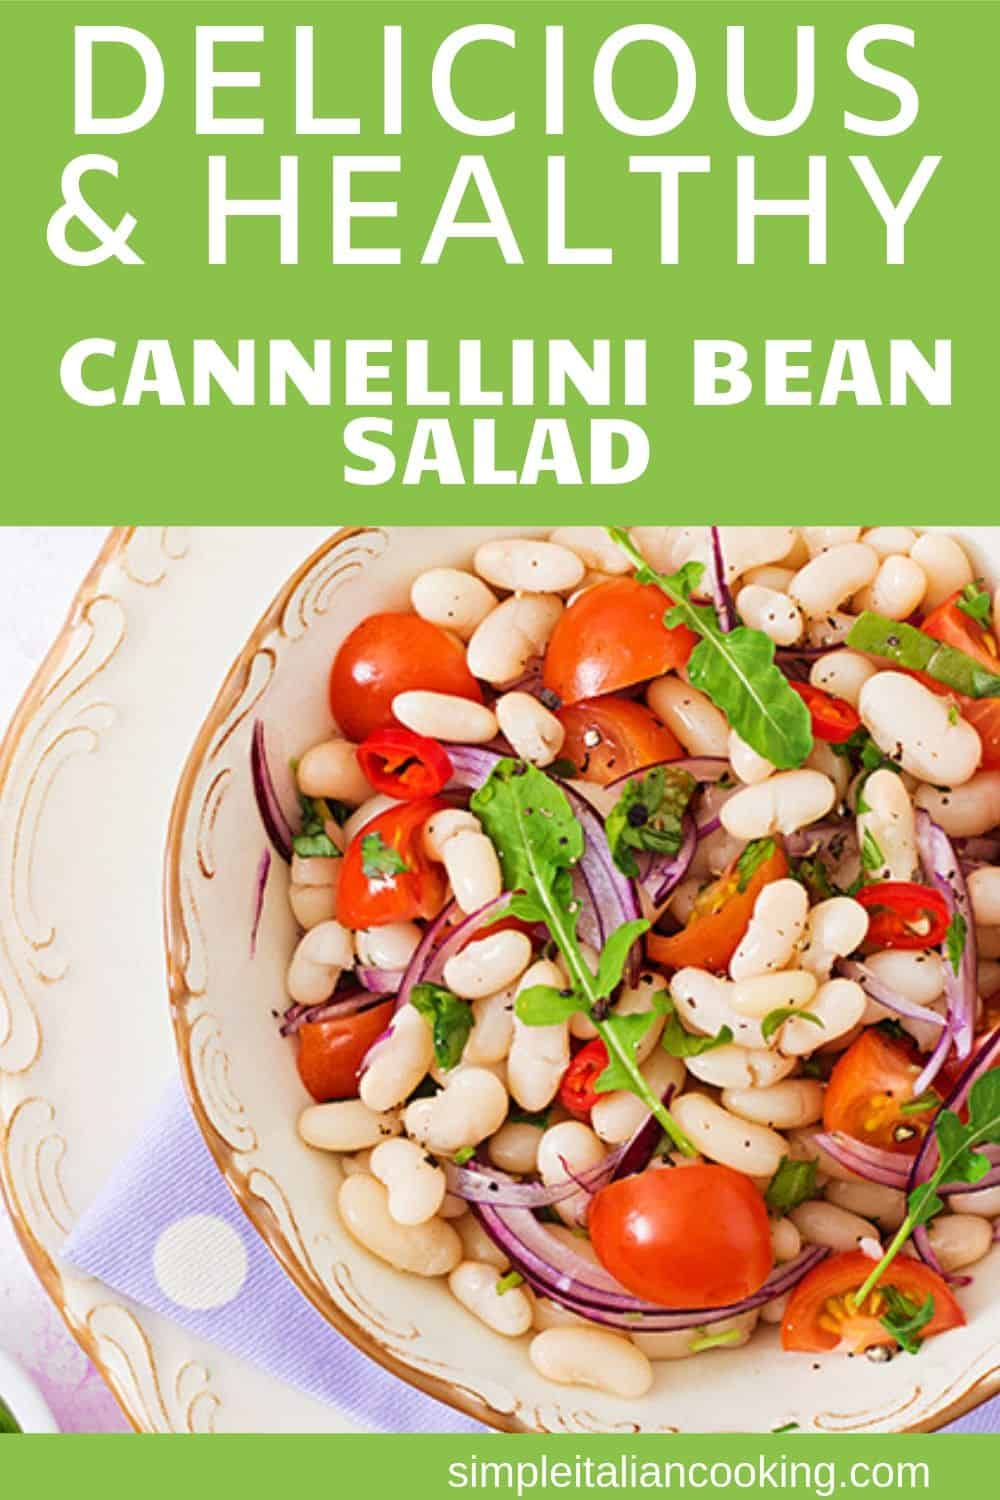 Make a healthy and amazingly delicious cannellini bean salad.  This Italian side dish or main meal uses wonderful ingredients like tomatoes, olives,  garlic, artichokes and more! Great for parties, Christmas, or holiday!  #italiansalad #easysalad #partysalad #easysidedish #healthylunch #cannellinibeans